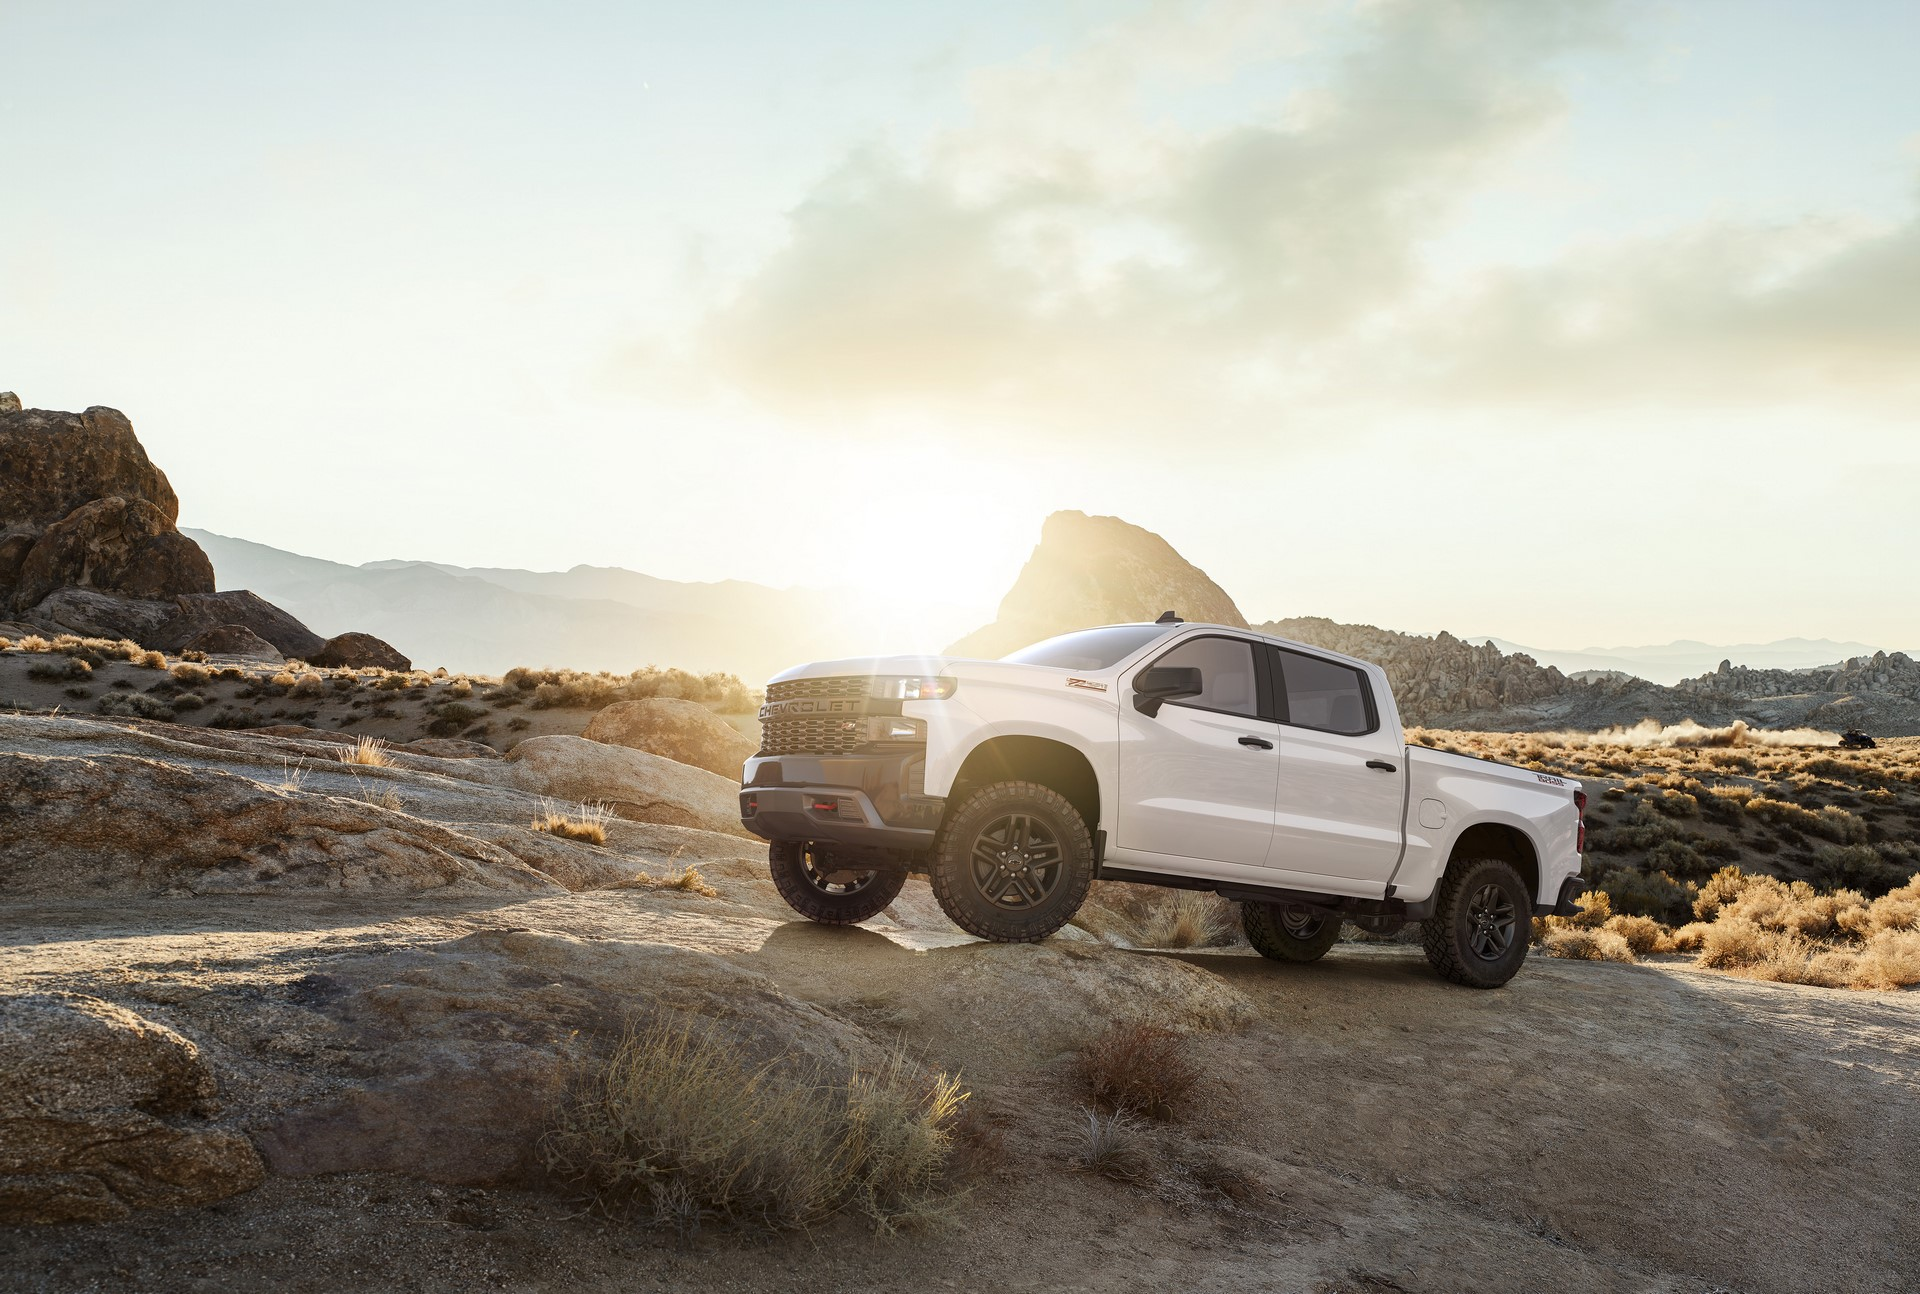 The all-new 2019 Silverado Custom Trailboss (new trim for 2019) adds off-road equipment to the Custom, including a 2-inch suspension lift and the Z71 Off-Road Package with a locking rear differential, skid plates, Rancho shocks, 18-inch wheels and Goodyear Duratrac off-road tires.